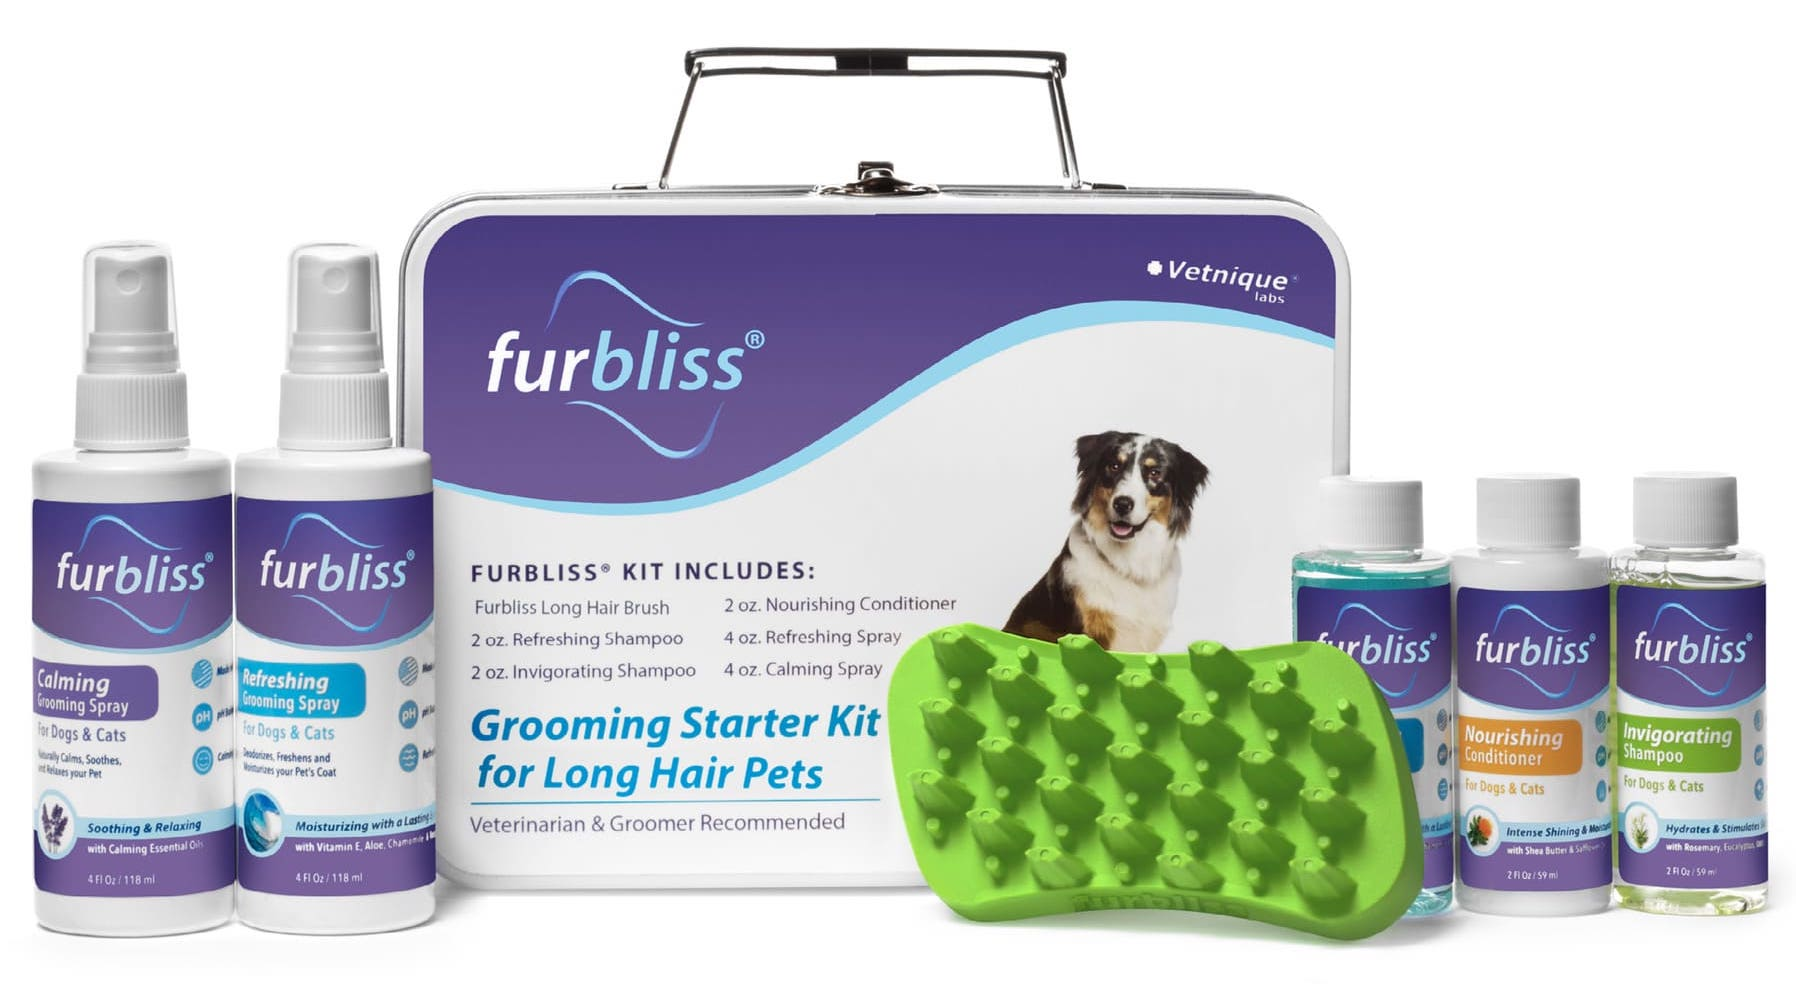 Furbliss Grooming & Bathing Kit 1 count for pets with long hair 1